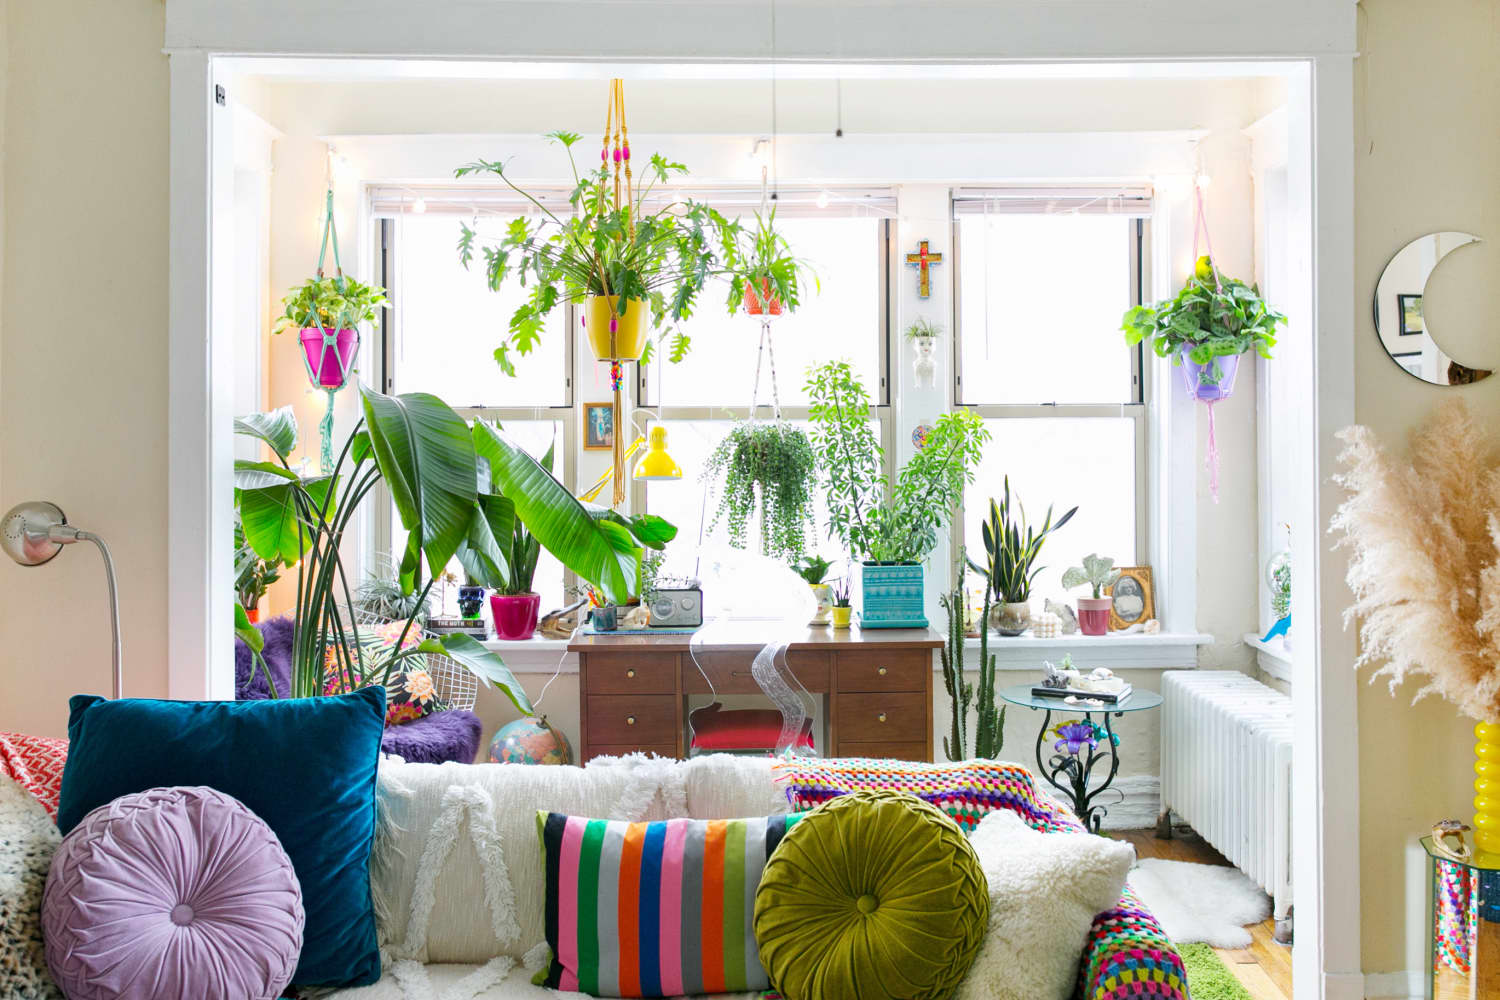 7 Overlooked Plants That Thrive in an Apartment with Overzealous Heat